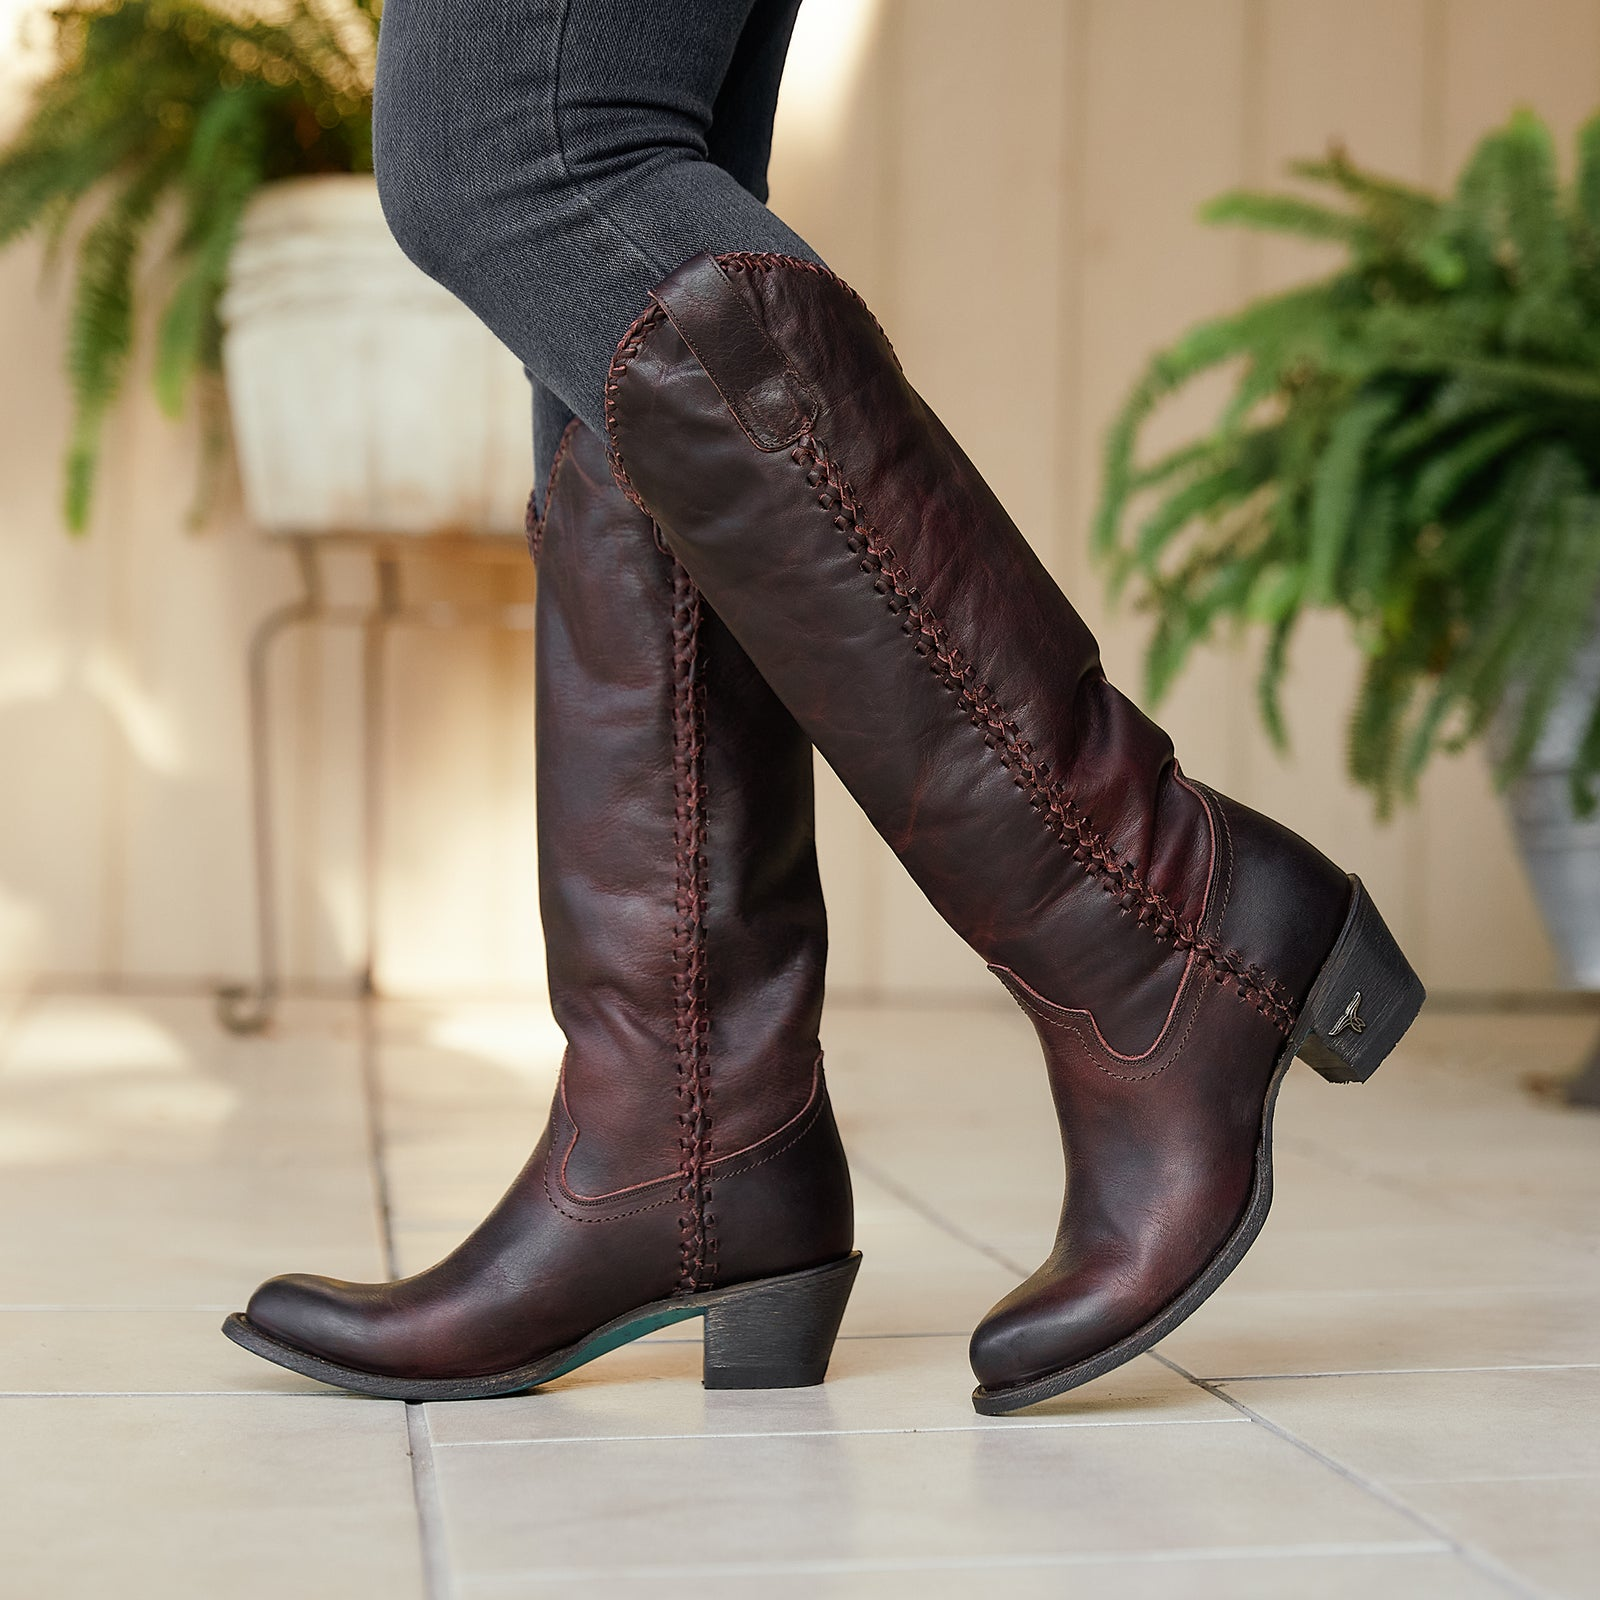 Discount Womens Leather Boots